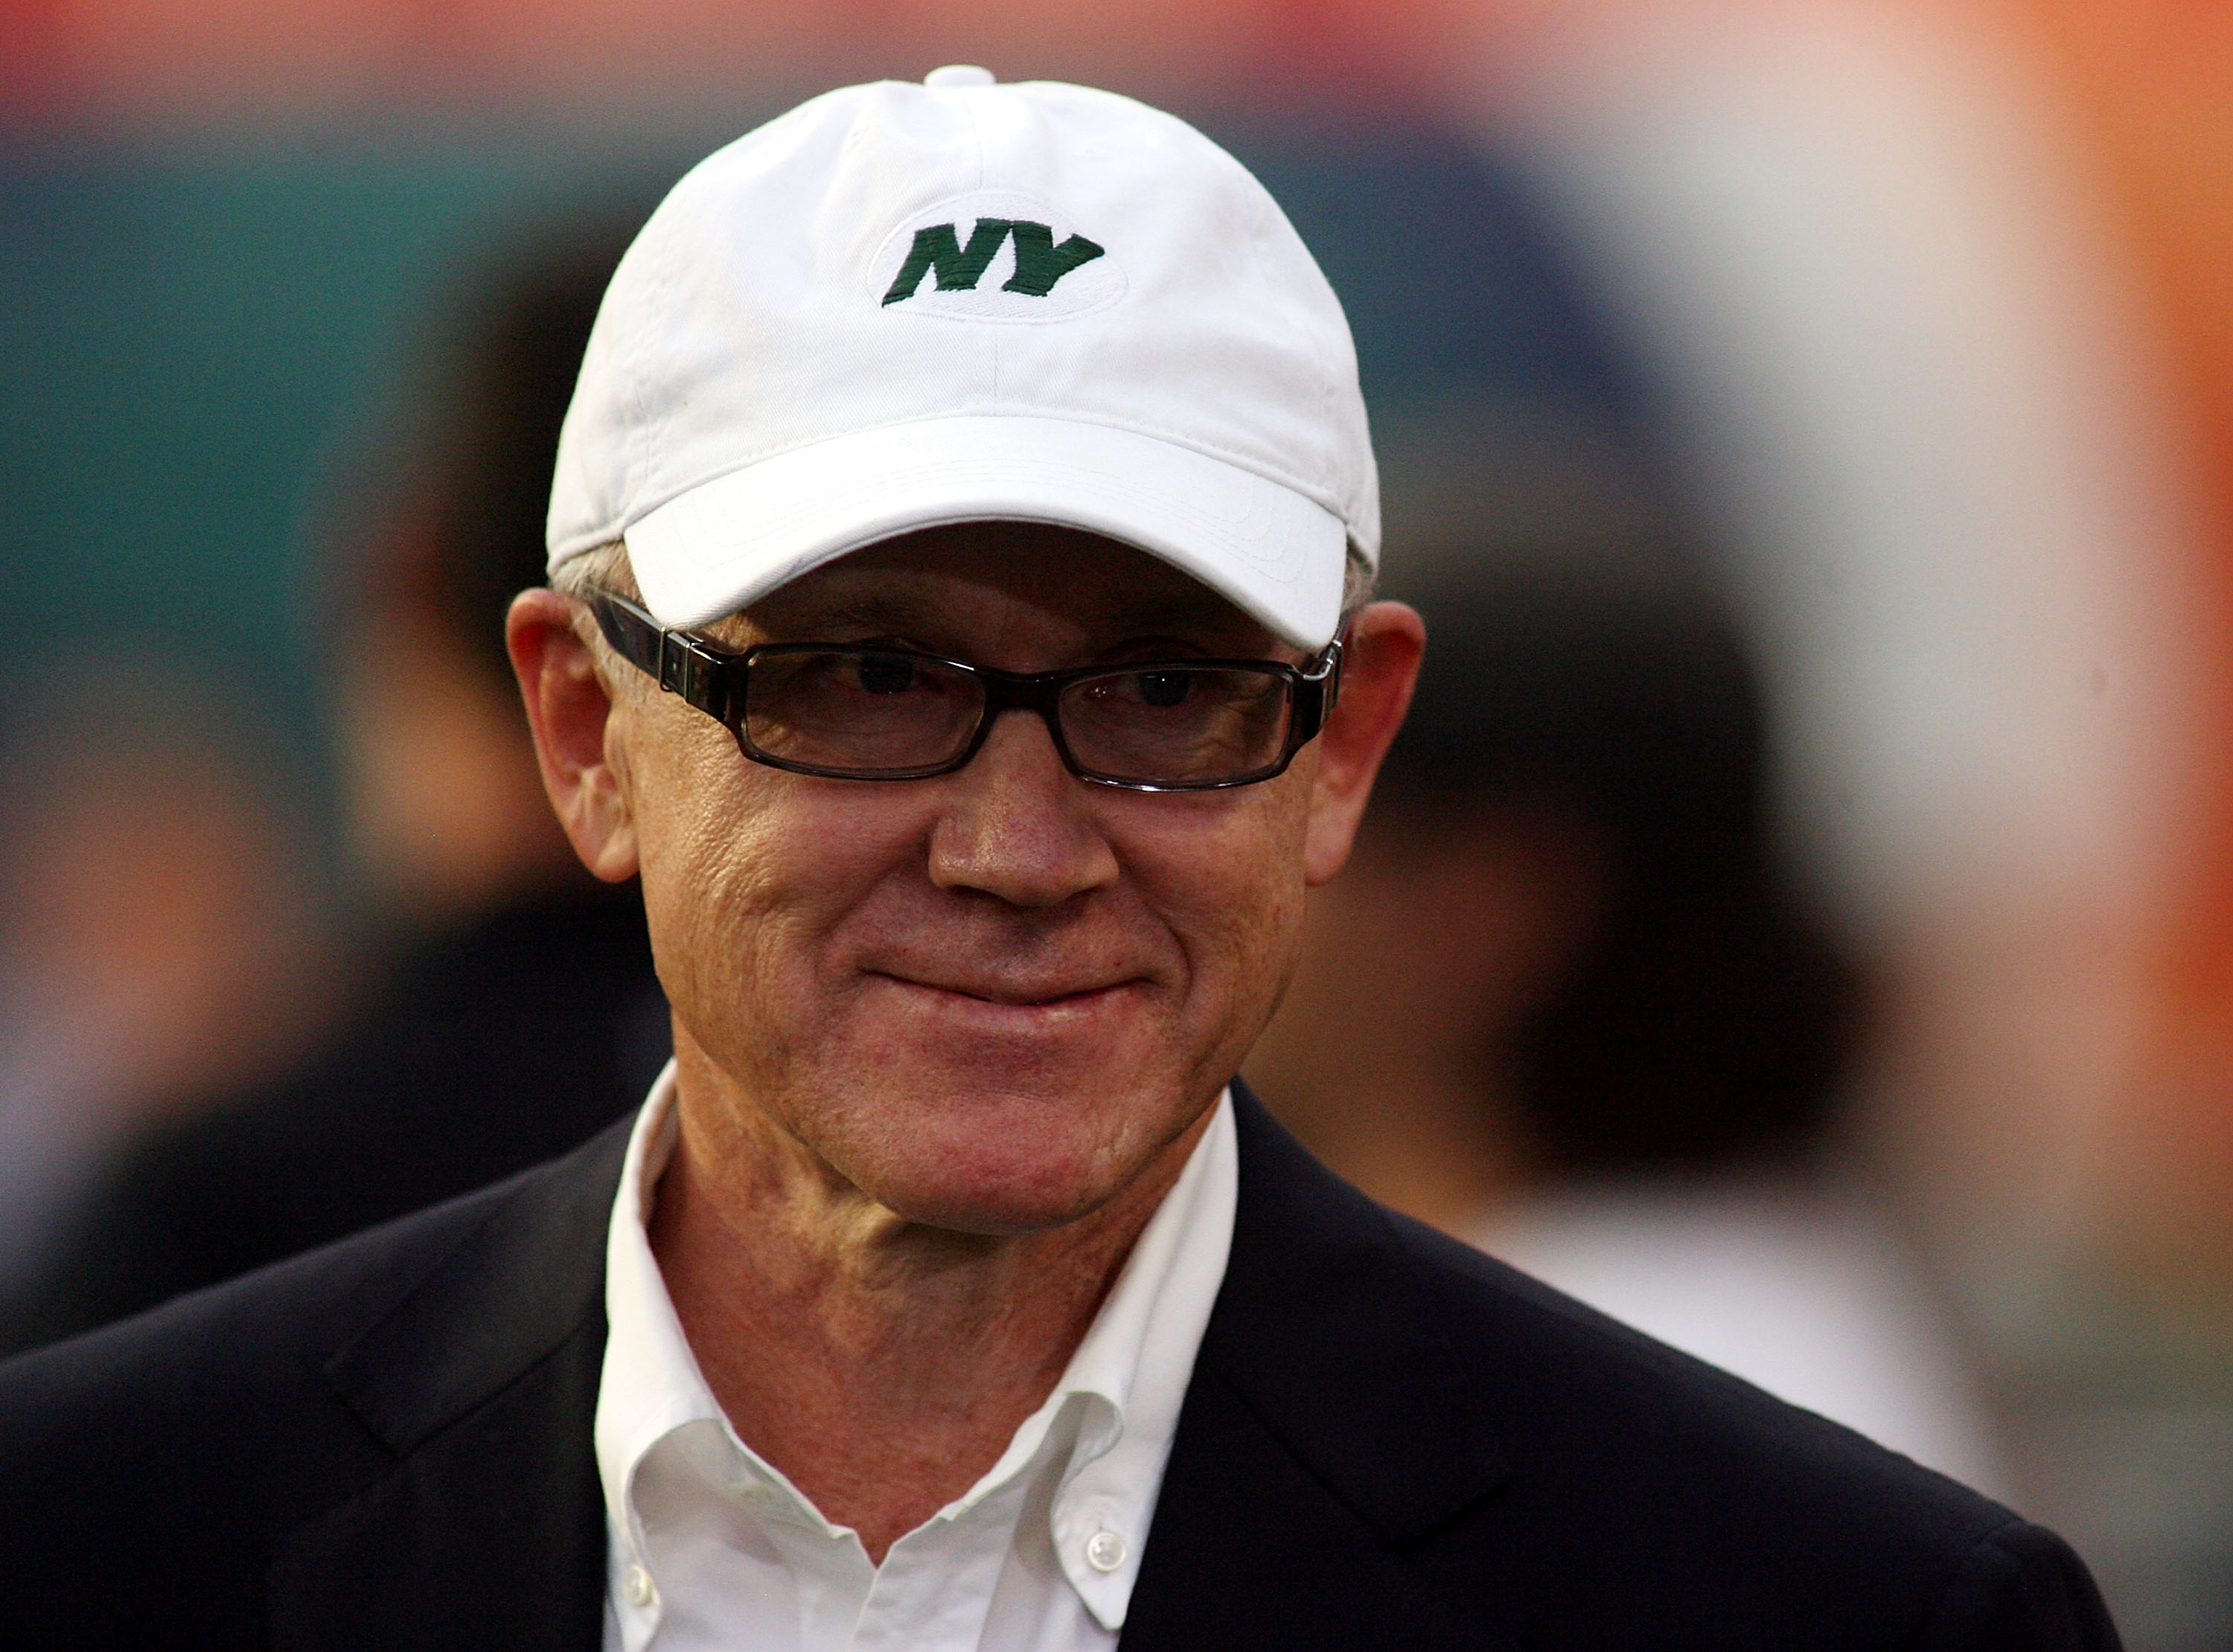 Jets' owner Woody Johnson